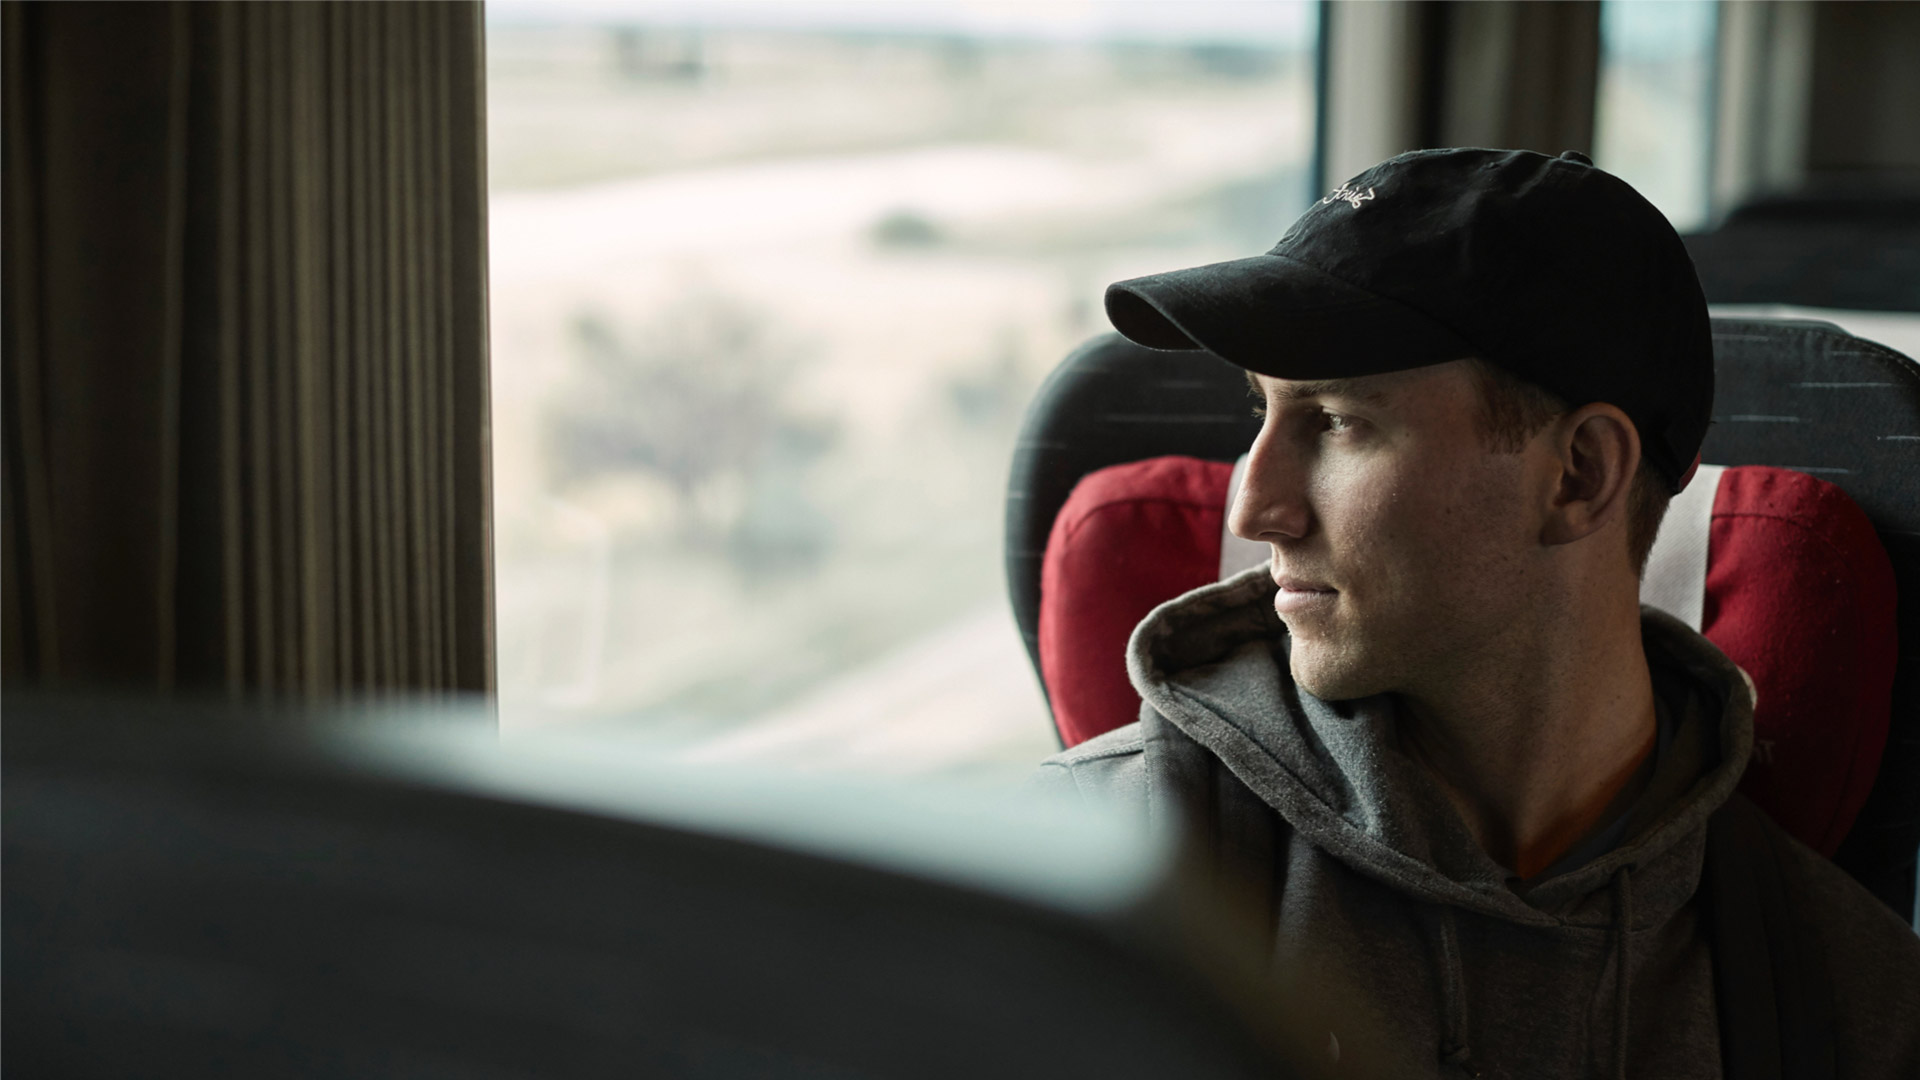 Man wearing baseball cap looking out train window